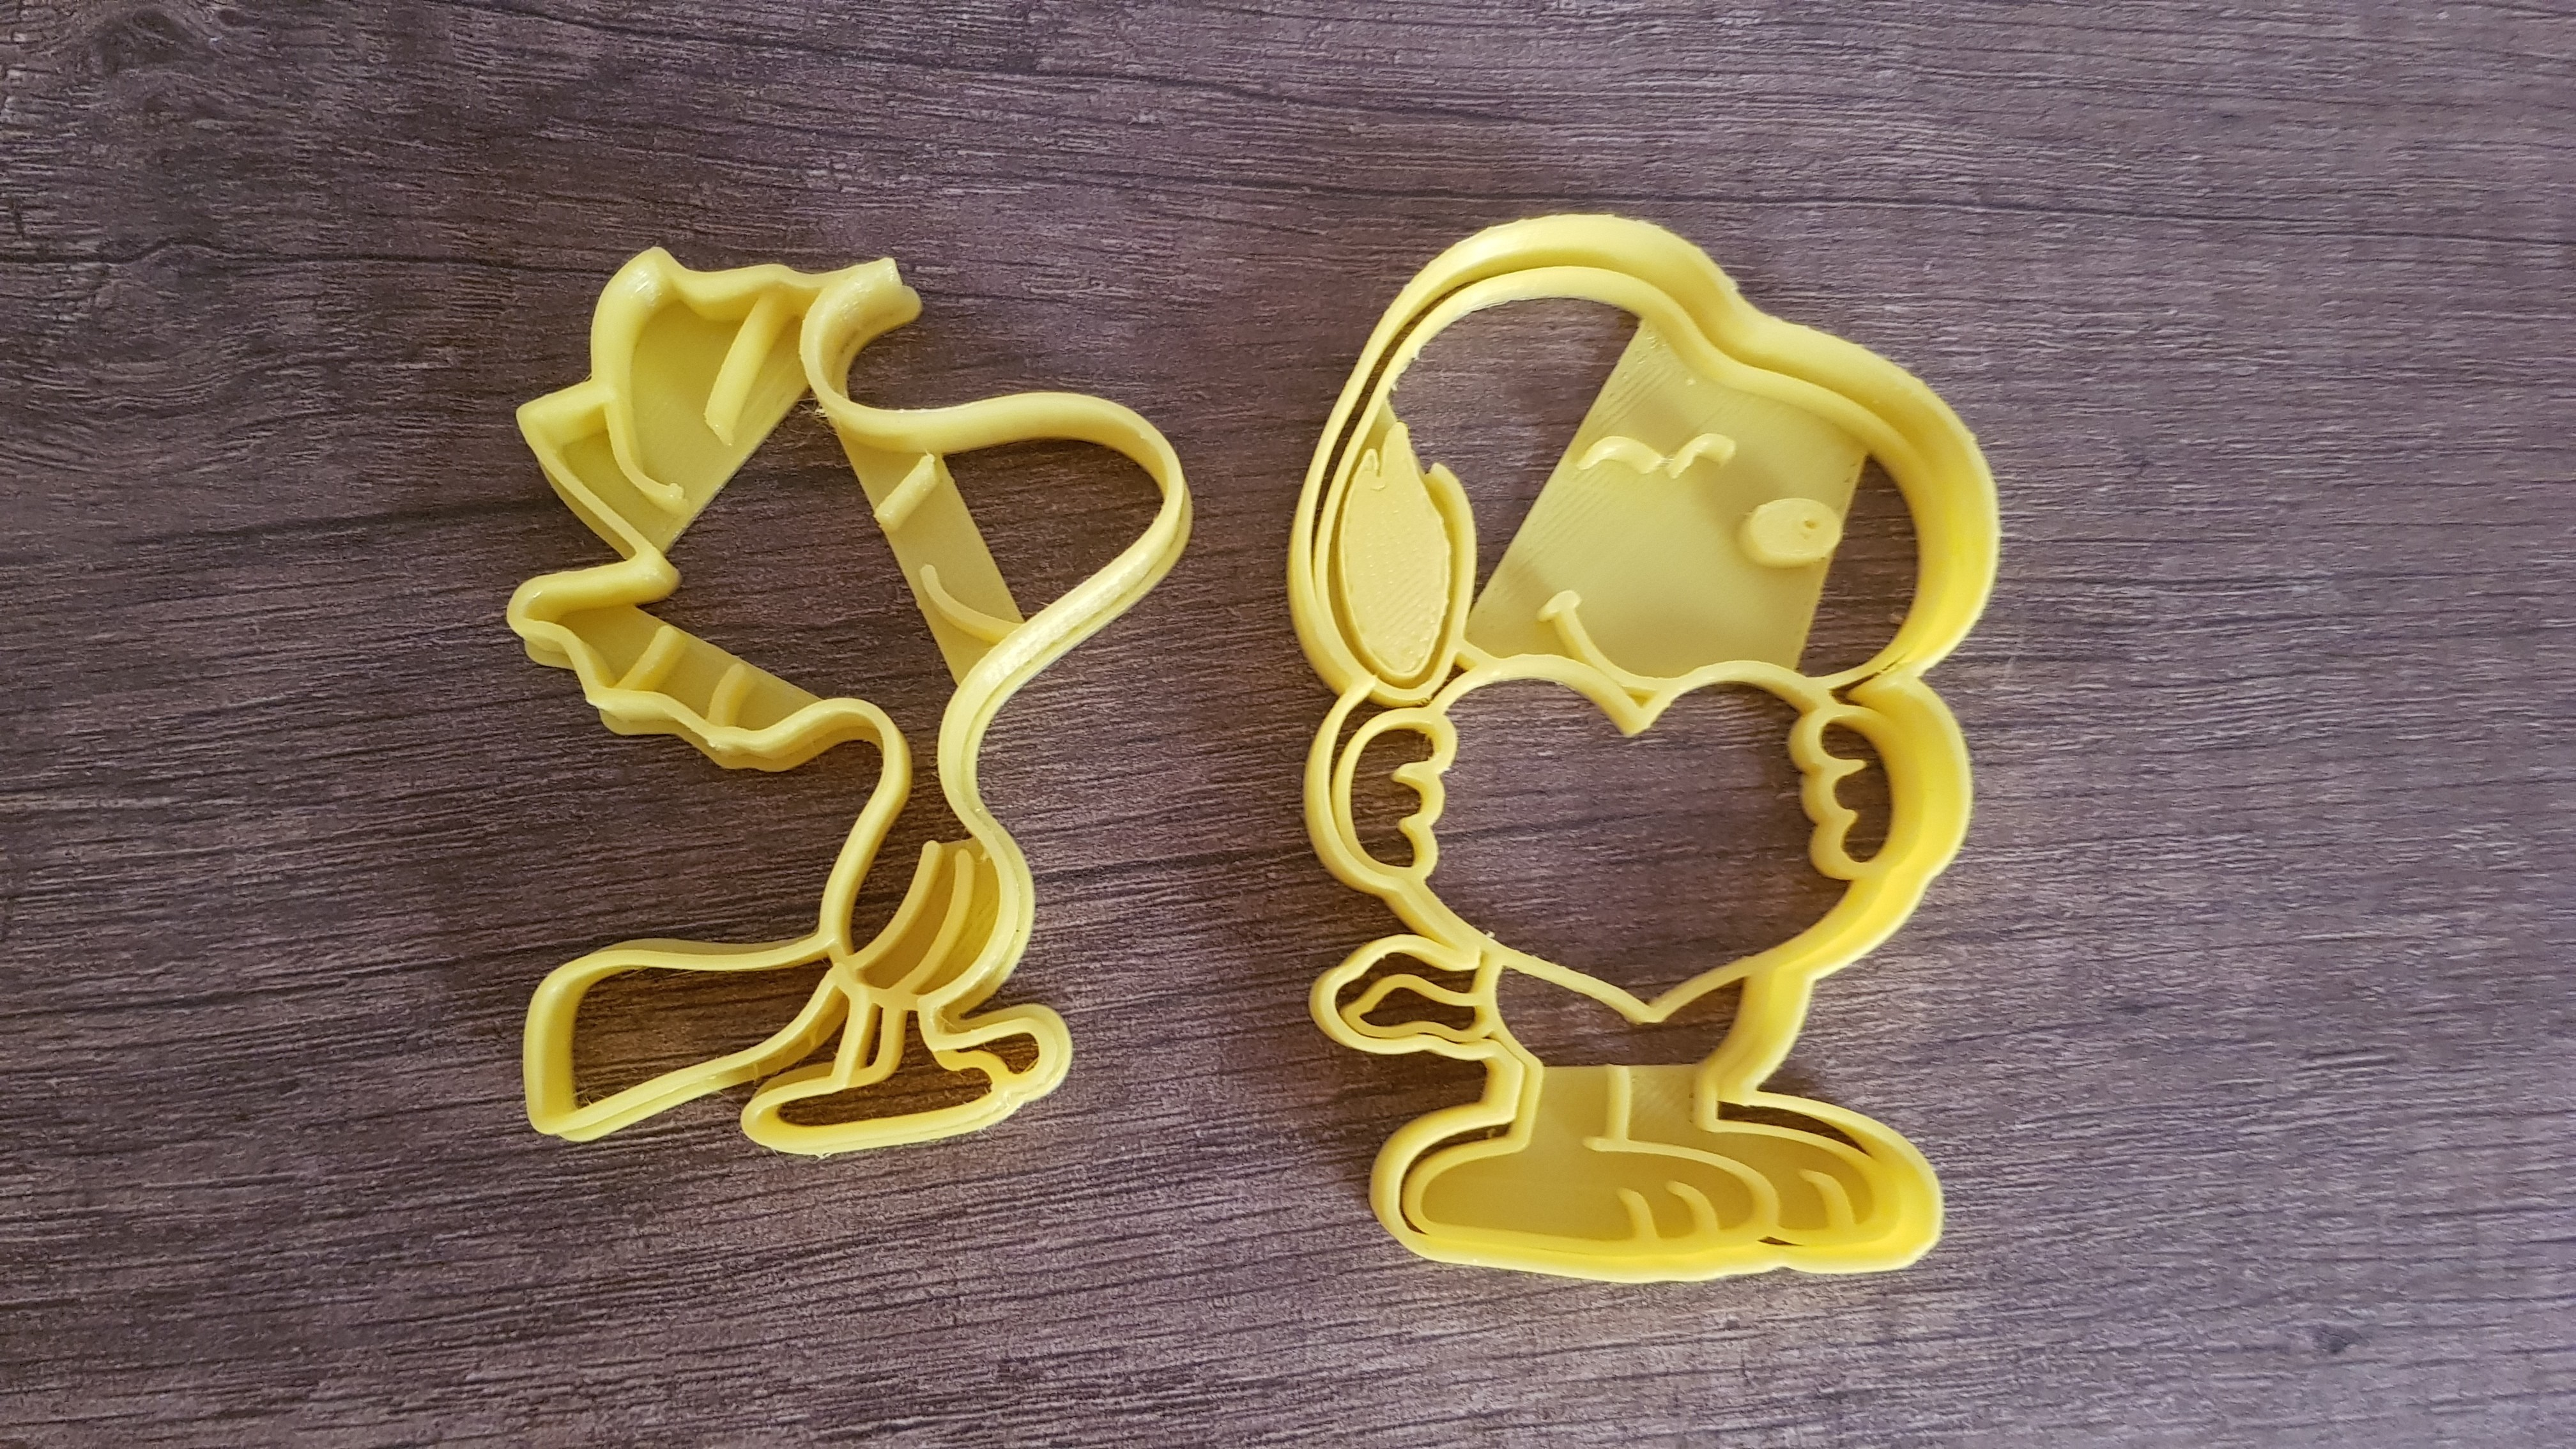 20181006_185036.jpg Download STL file Snoopy x2 cookie cutter • 3D printer template, arprint3d